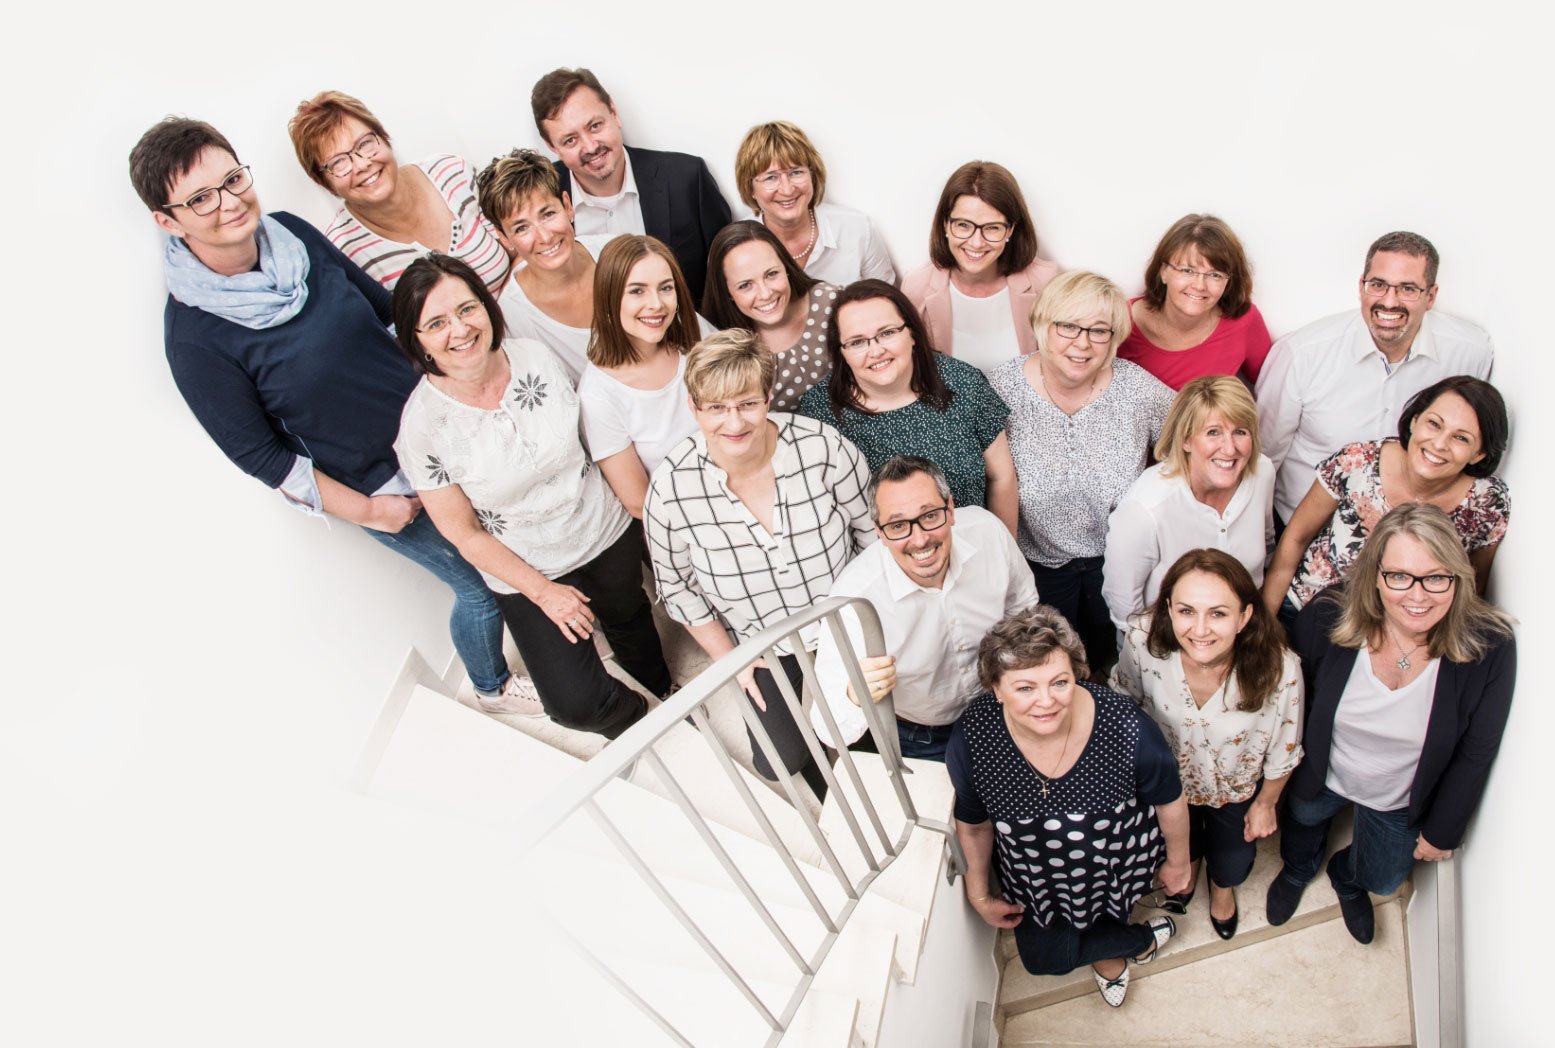 Zahn & Zahn Steuerberater - meet our team.